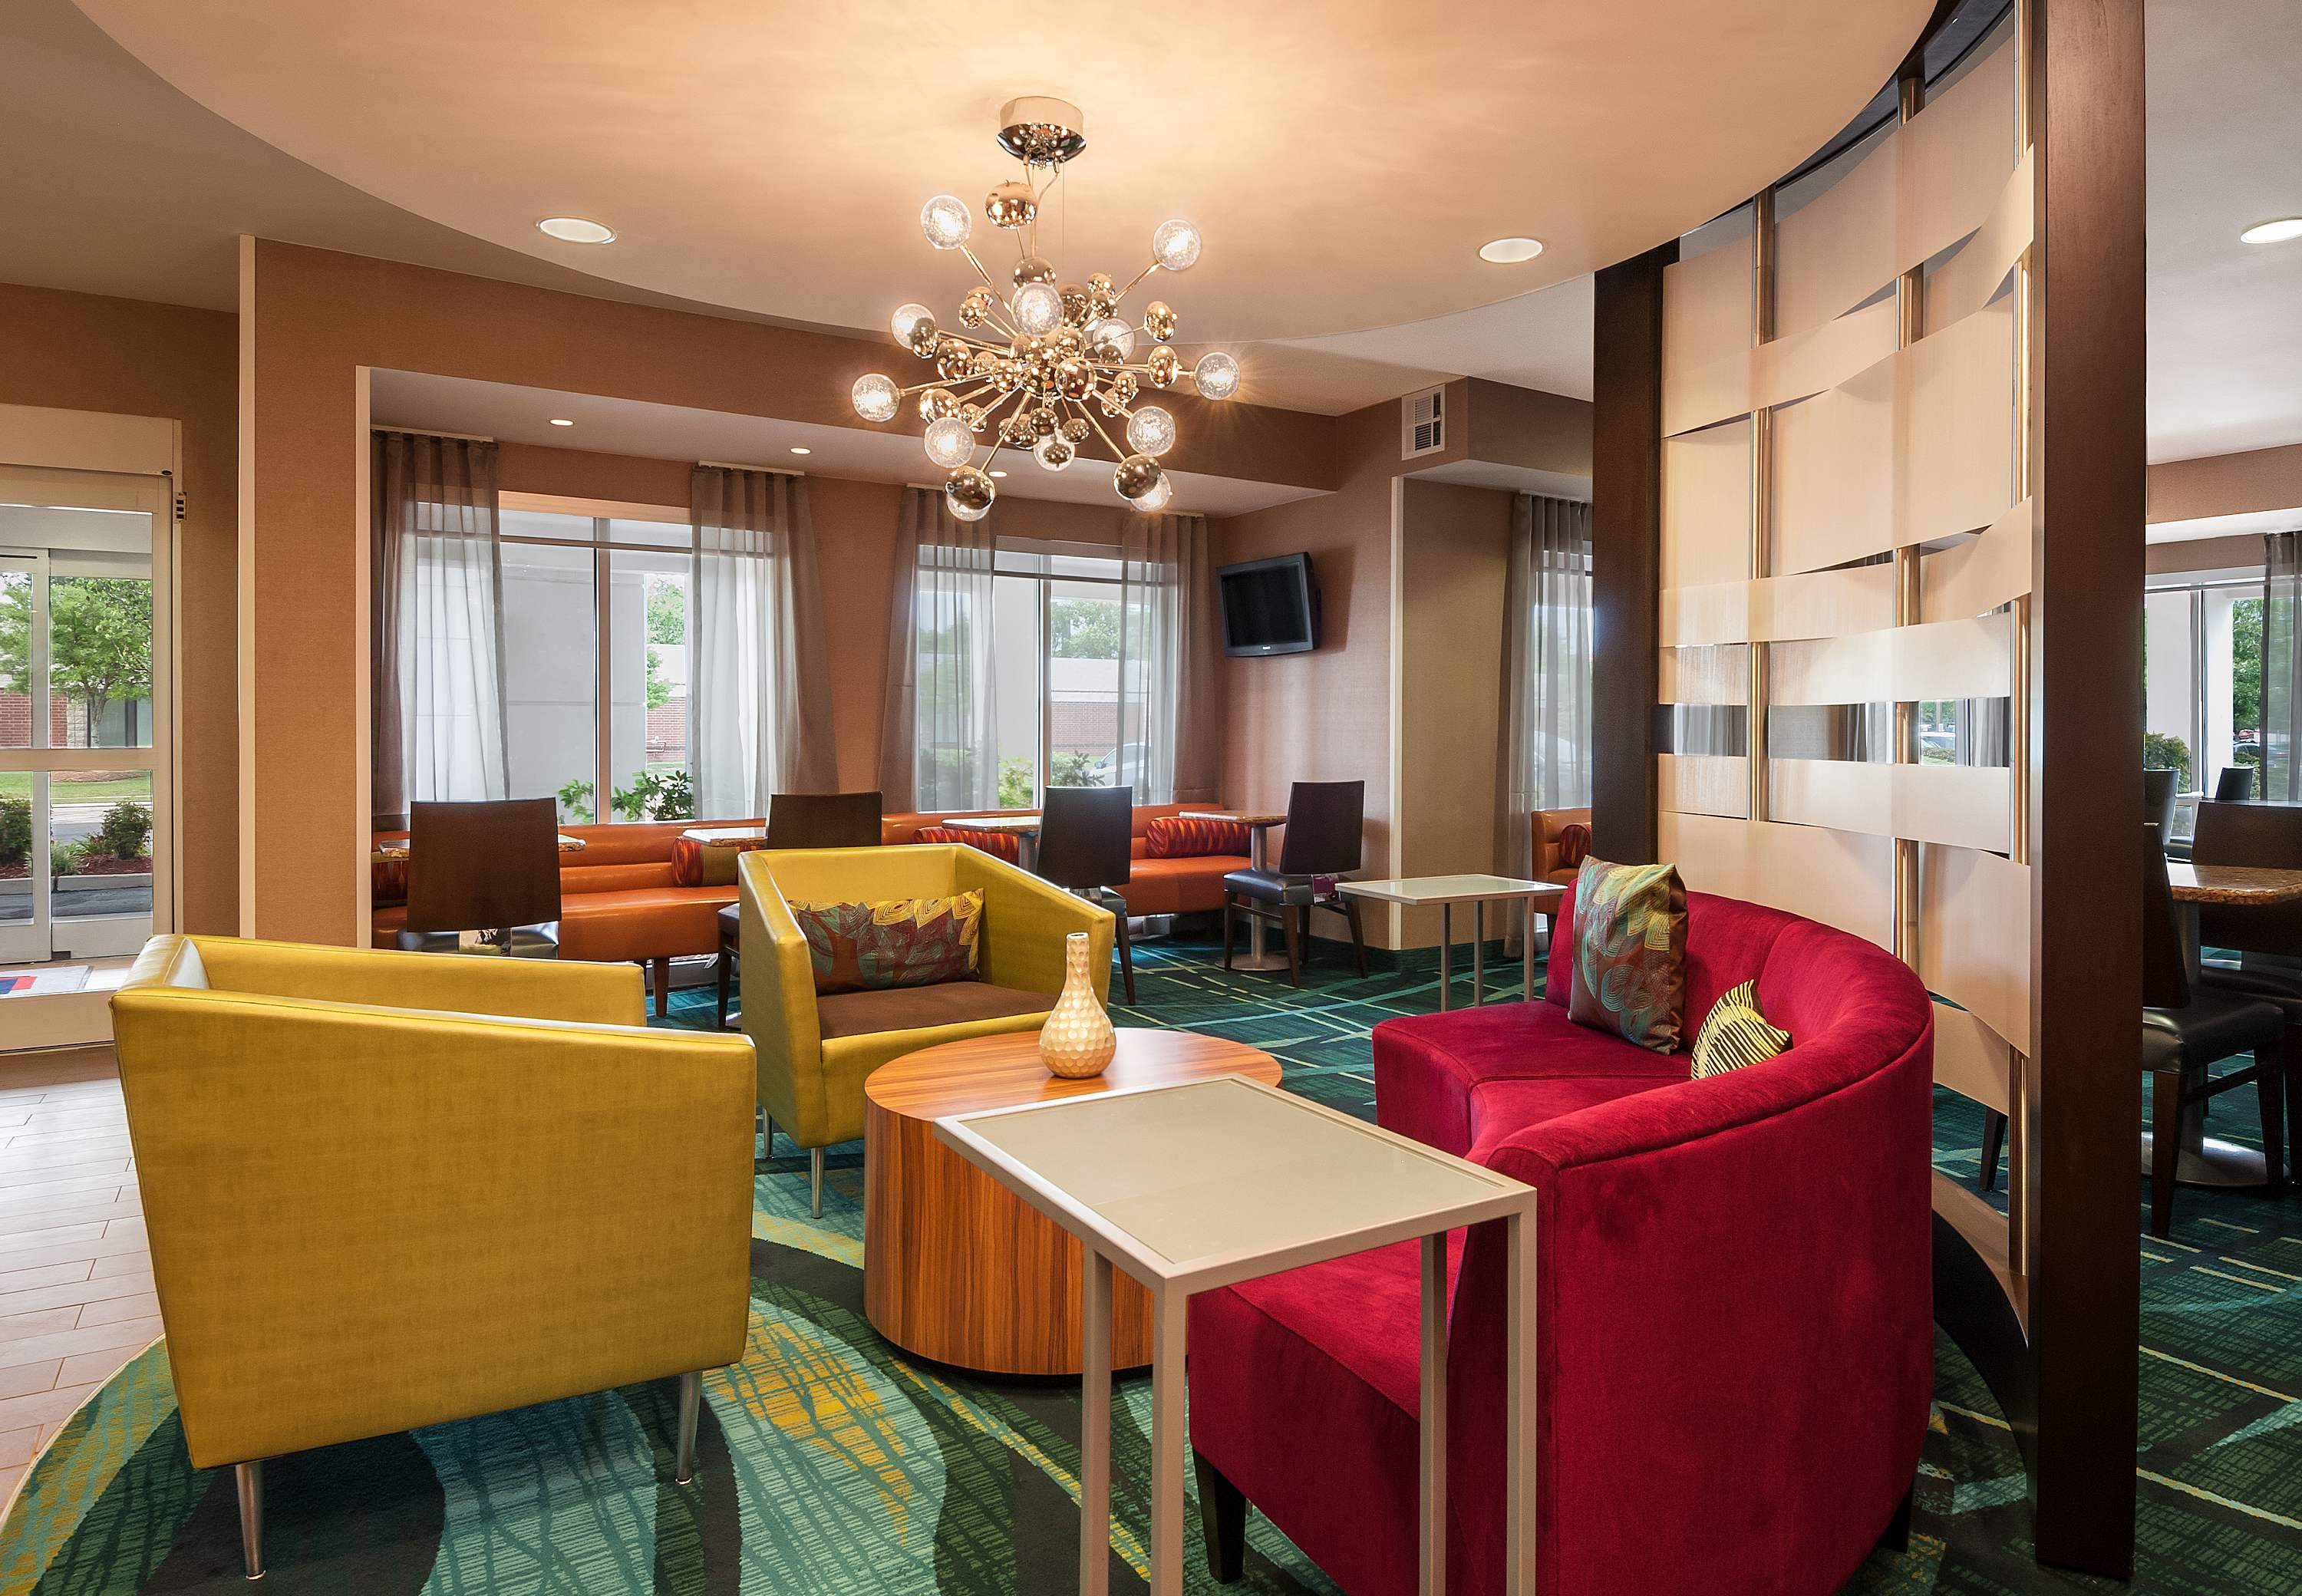 SpringHill Suites by Marriott Baton Rouge South image 1